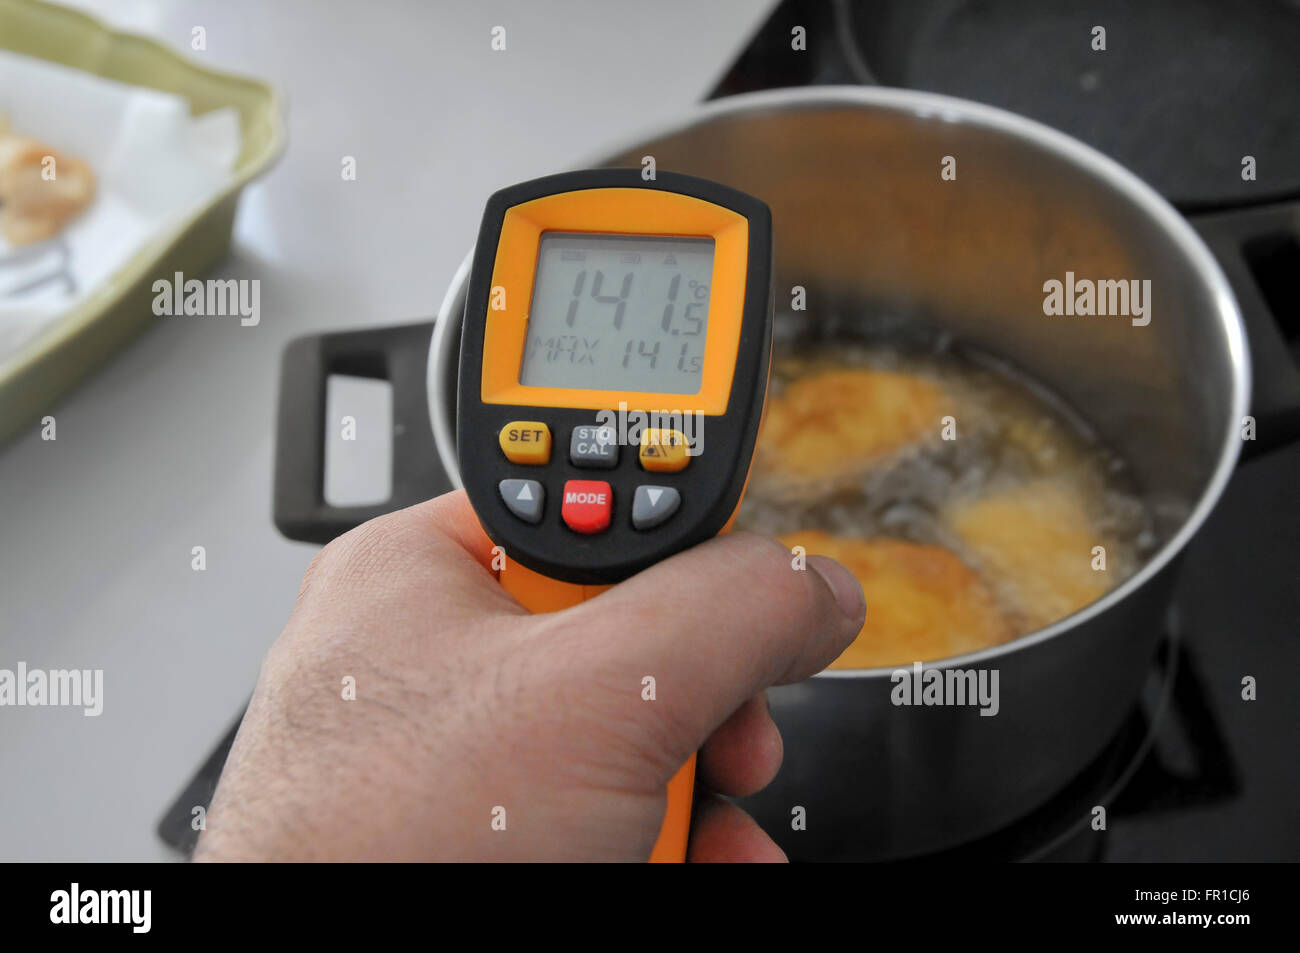 Handheld laser remote thermometer measures the temperature of boiling oil 141 degrees Celsius - Stock Image